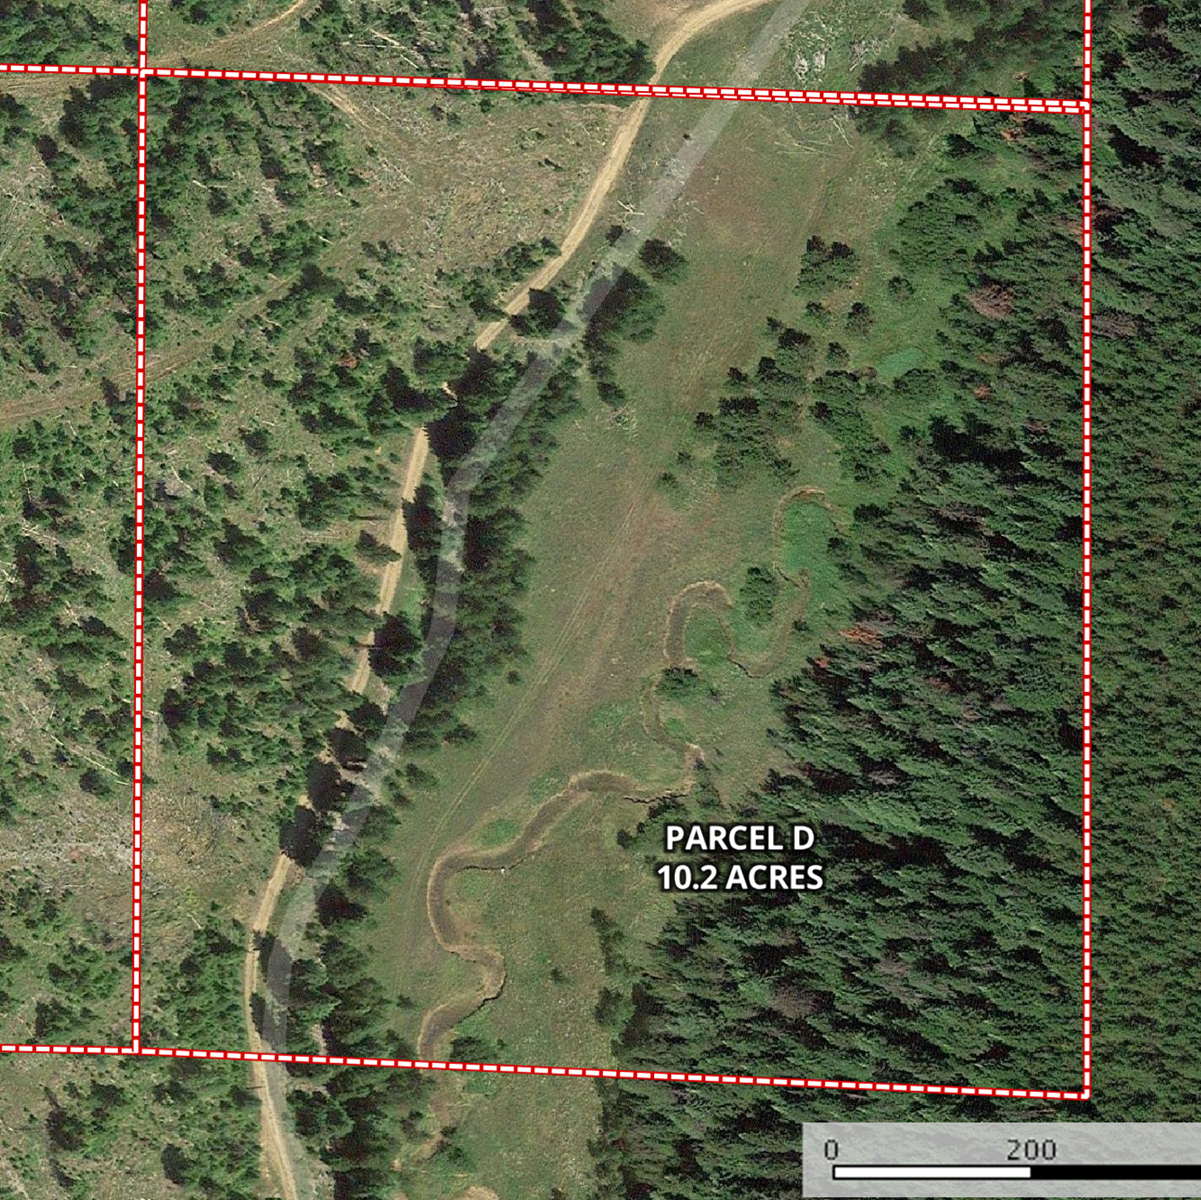 Timbered Building Land for Sale, Orofino, Idaho Real Estate